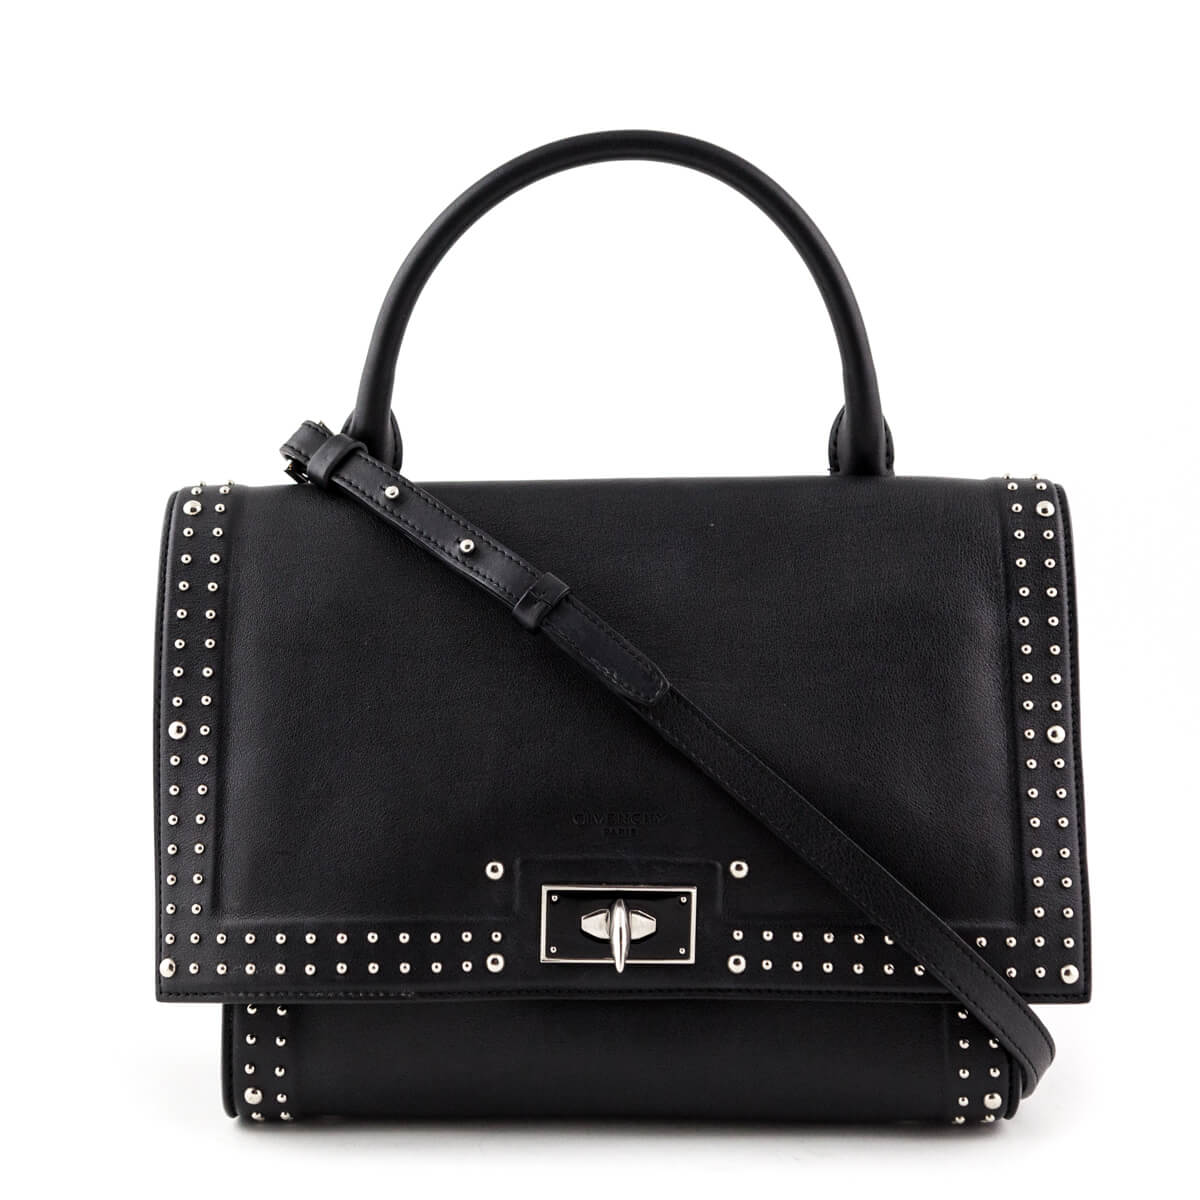 a79d1b8a3c Givenchy Black Calfskin Small Stud Couture Shark Tooth Satchel - LOVE that  BAG - Preowned Authentic ...